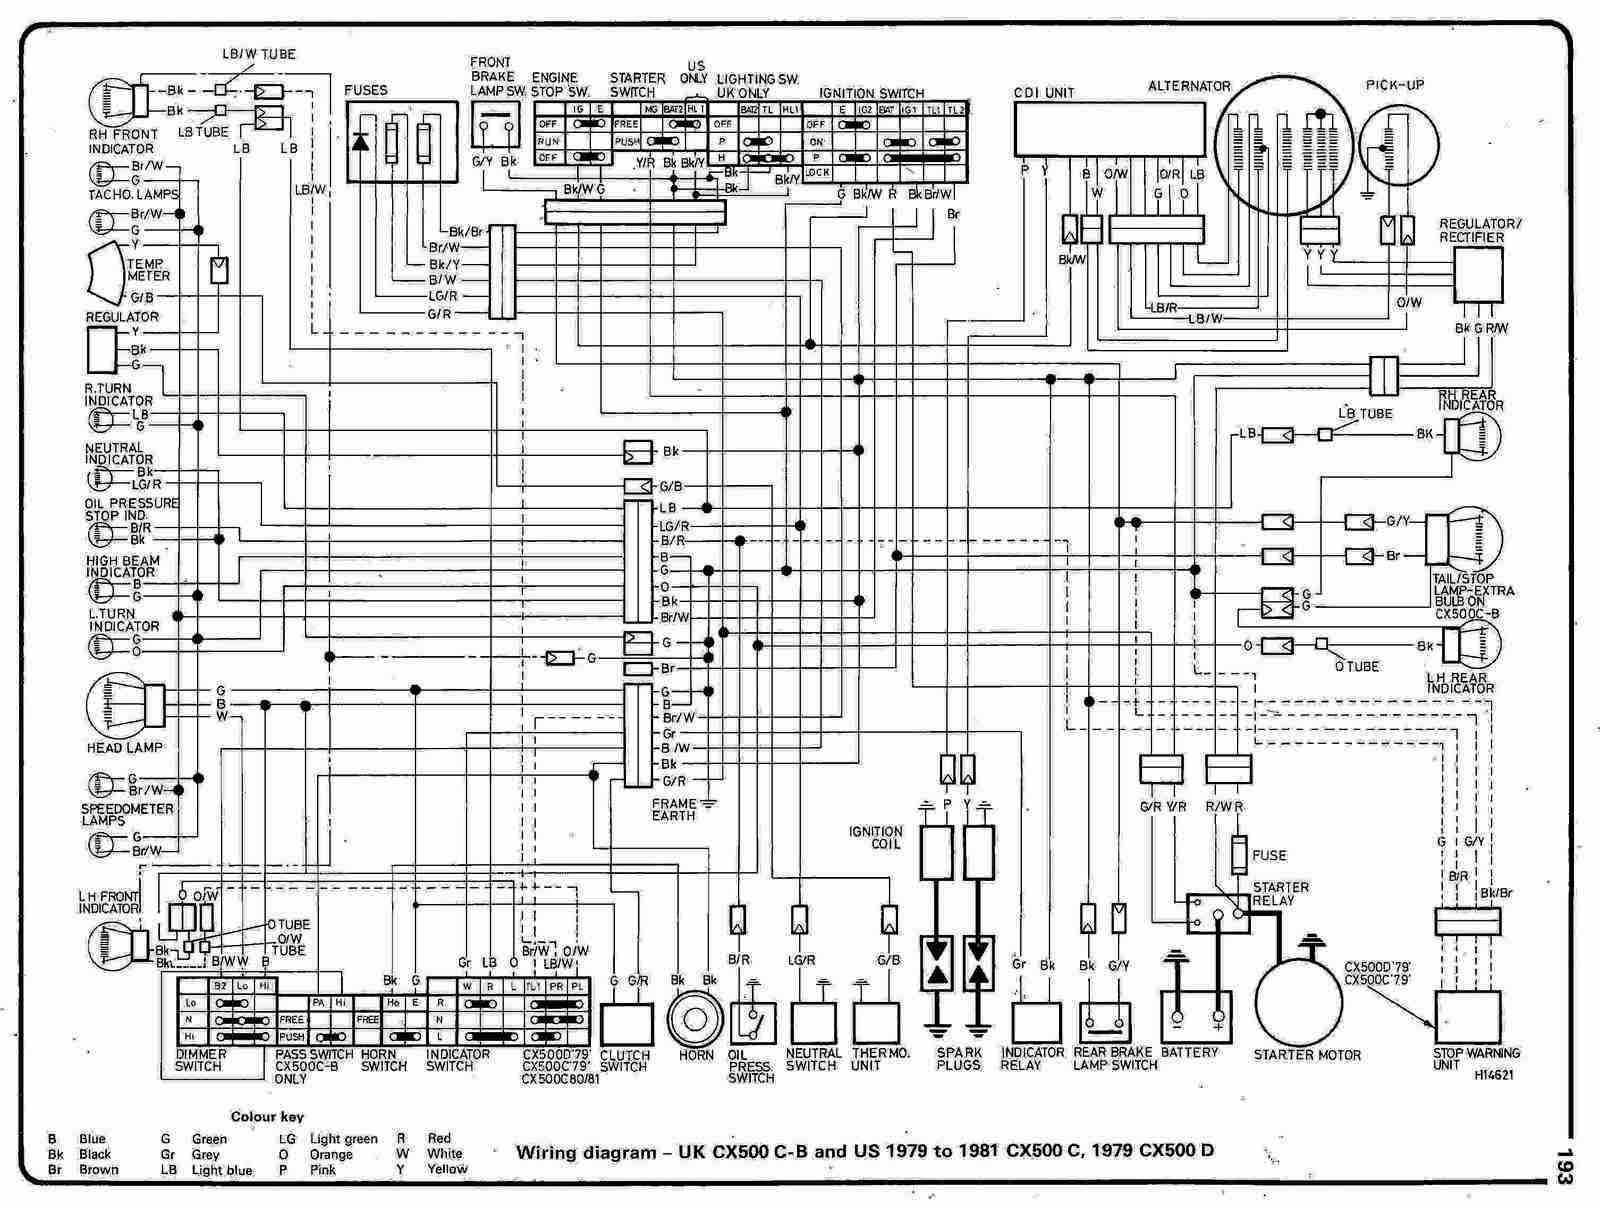 Glamorous 1993 honda ct70 wiring diagram gallery best image wire outstanding 1980 honda c70 passport wiring diagram ideas best asfbconference2016 Choice Image